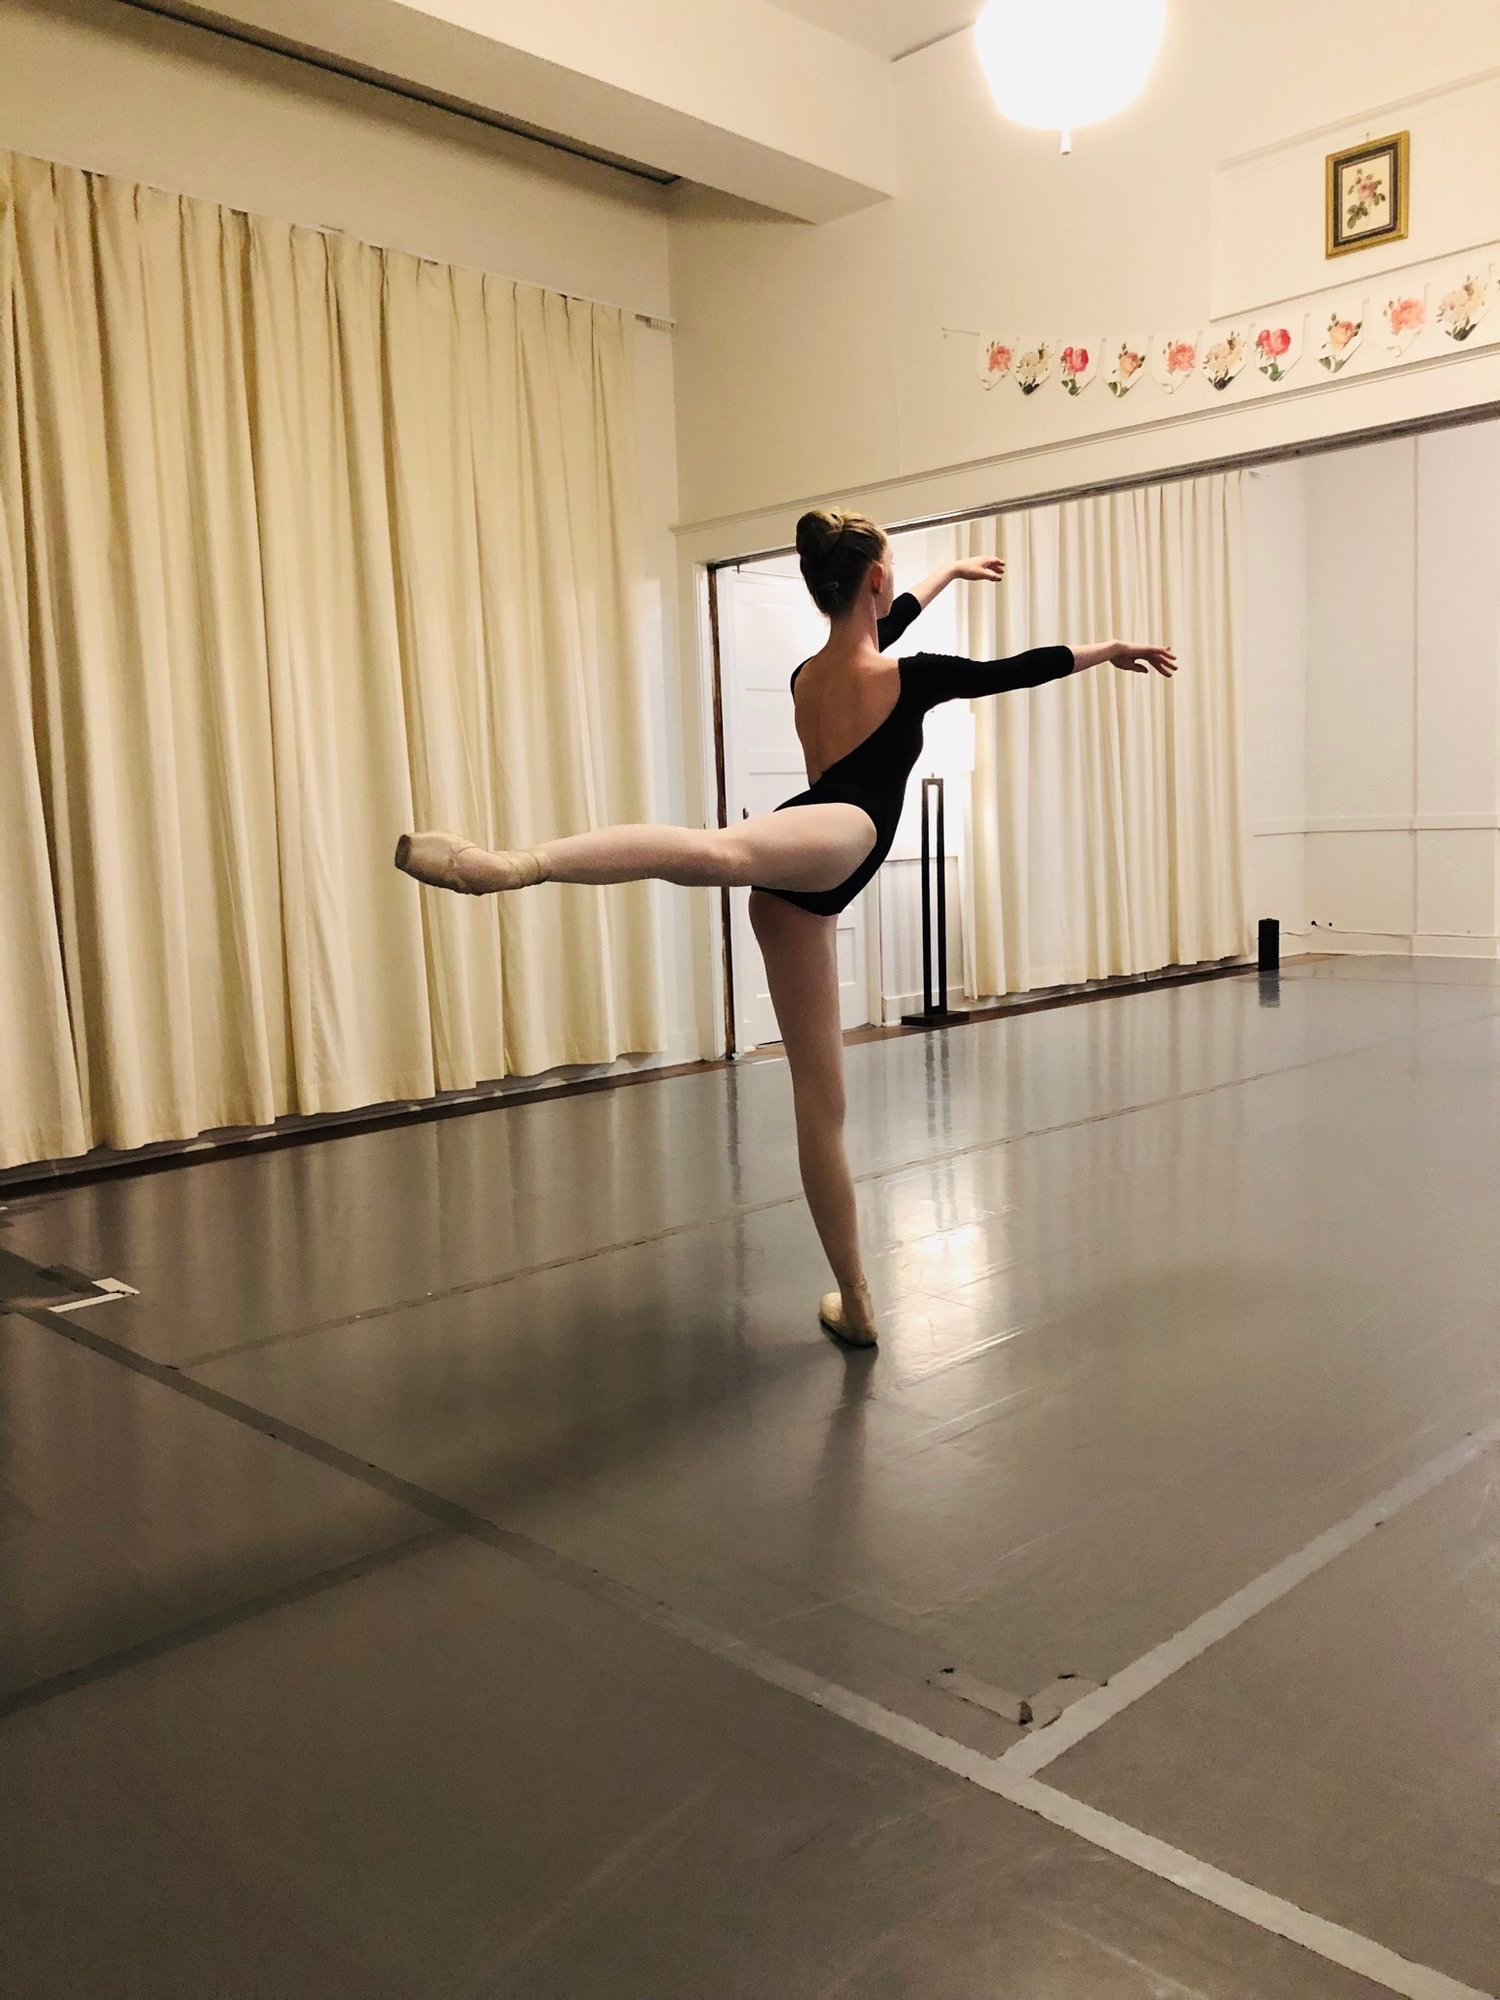 Level 3 - INTERMEDIATE (ages 12-14)Find your ballet voice. This series of classes is designed for the dancer seeking excellent dance career training as well as the passionate dancer who enjoys high-quality ballet as recreation. Registration for Level 3 is only available to dancers who have completed Level 2 classes at RCBS.Once 3b is completed, dancers graduate from RCBS & attend pre-professional or recreational classes all over. RCBS Alumni have been accepted into programs & companies like Oregon Ballet Theatre School, Jefferson Dancers, Bodyvox's Junior Artist Generator, Northwest Dance Project, as well as many summer intensives including Dance Theatre of Harlem's program in NYC.